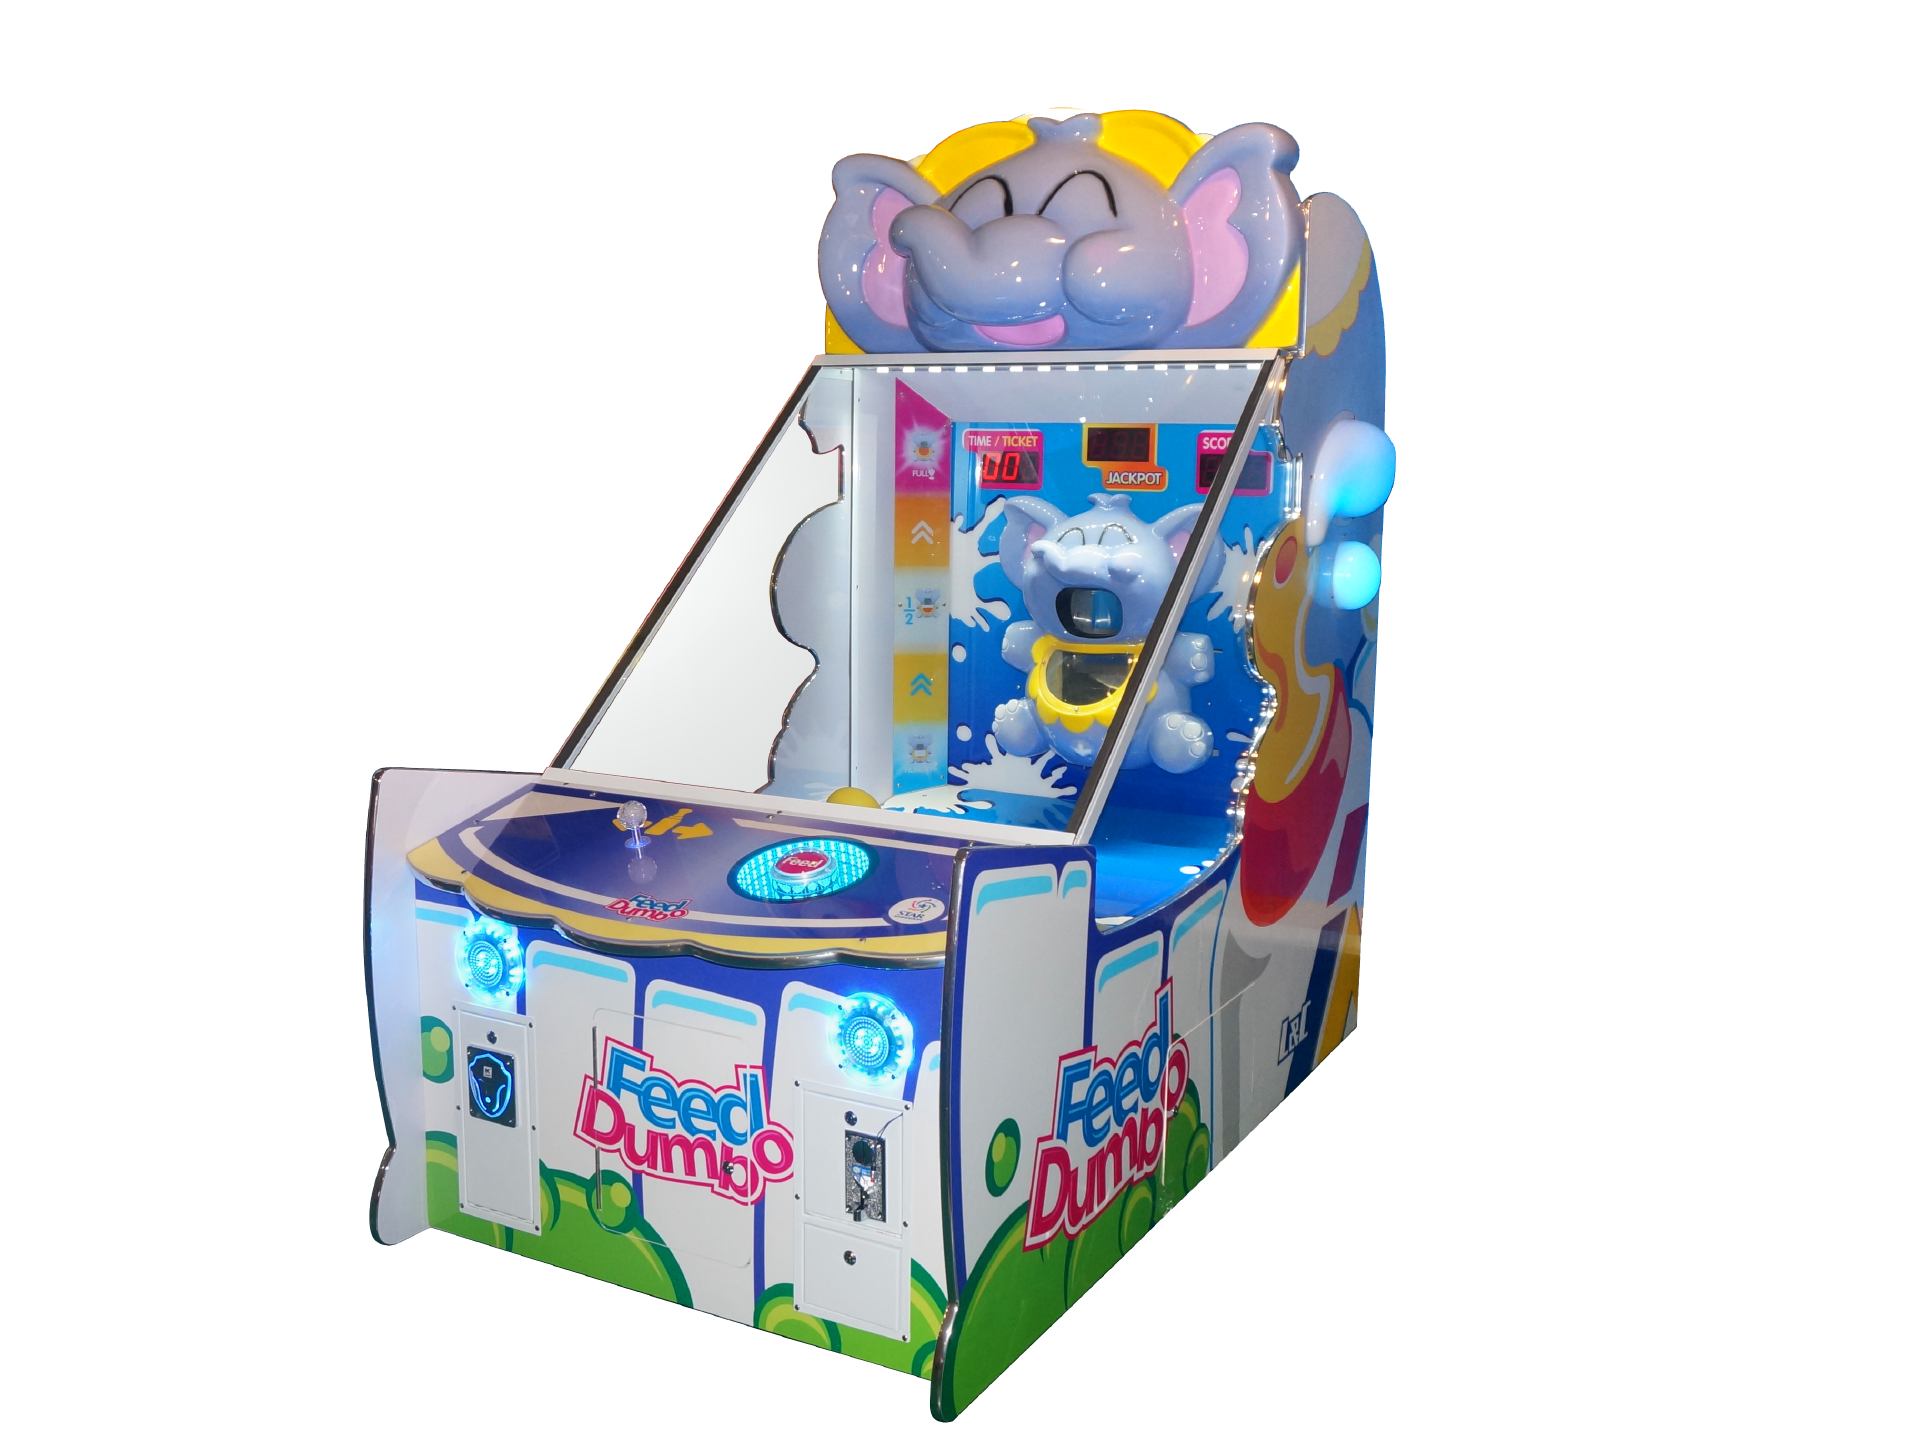 Star Animation to Introduce Its Latest Game machine at booth